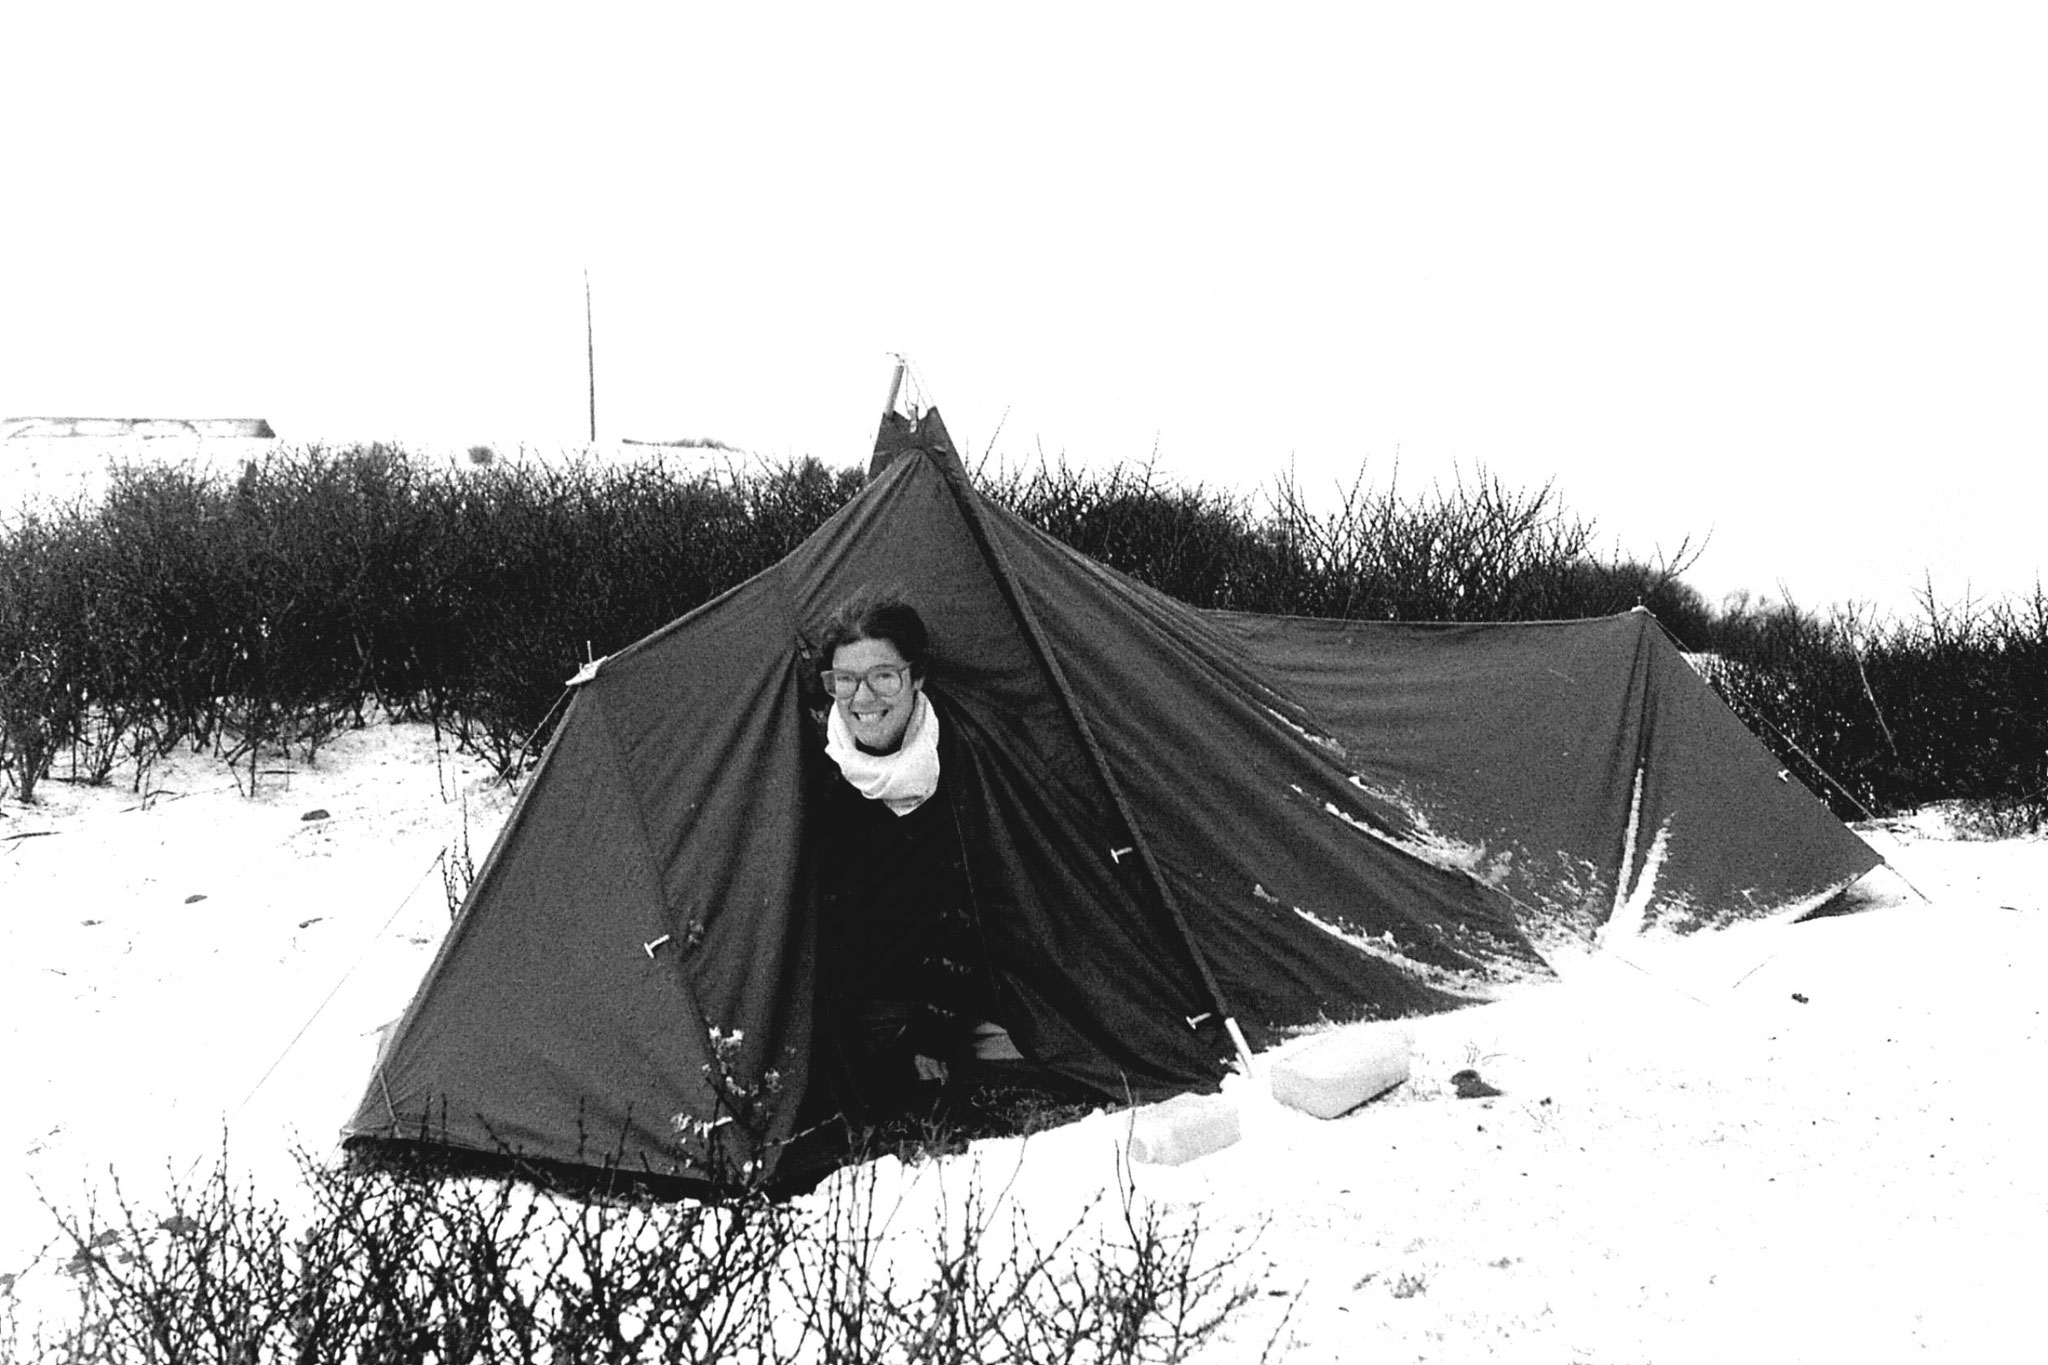 6/5/1990: 13: Sandakpu E in tent after hail